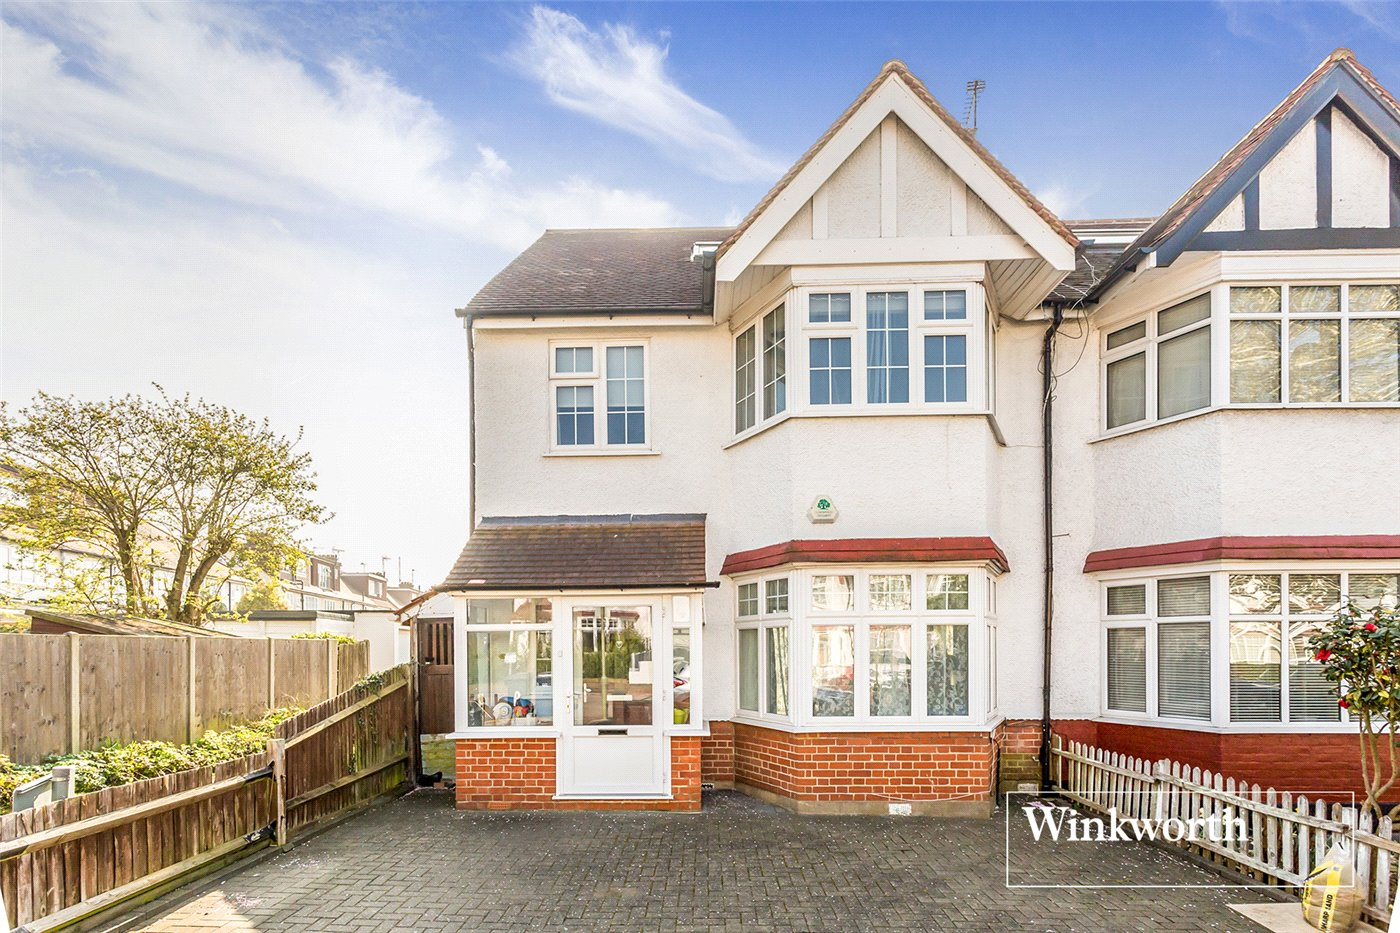 4 Bedrooms End Of Terrace House for sale in Claigmar Gardens, Finchley, London, N3